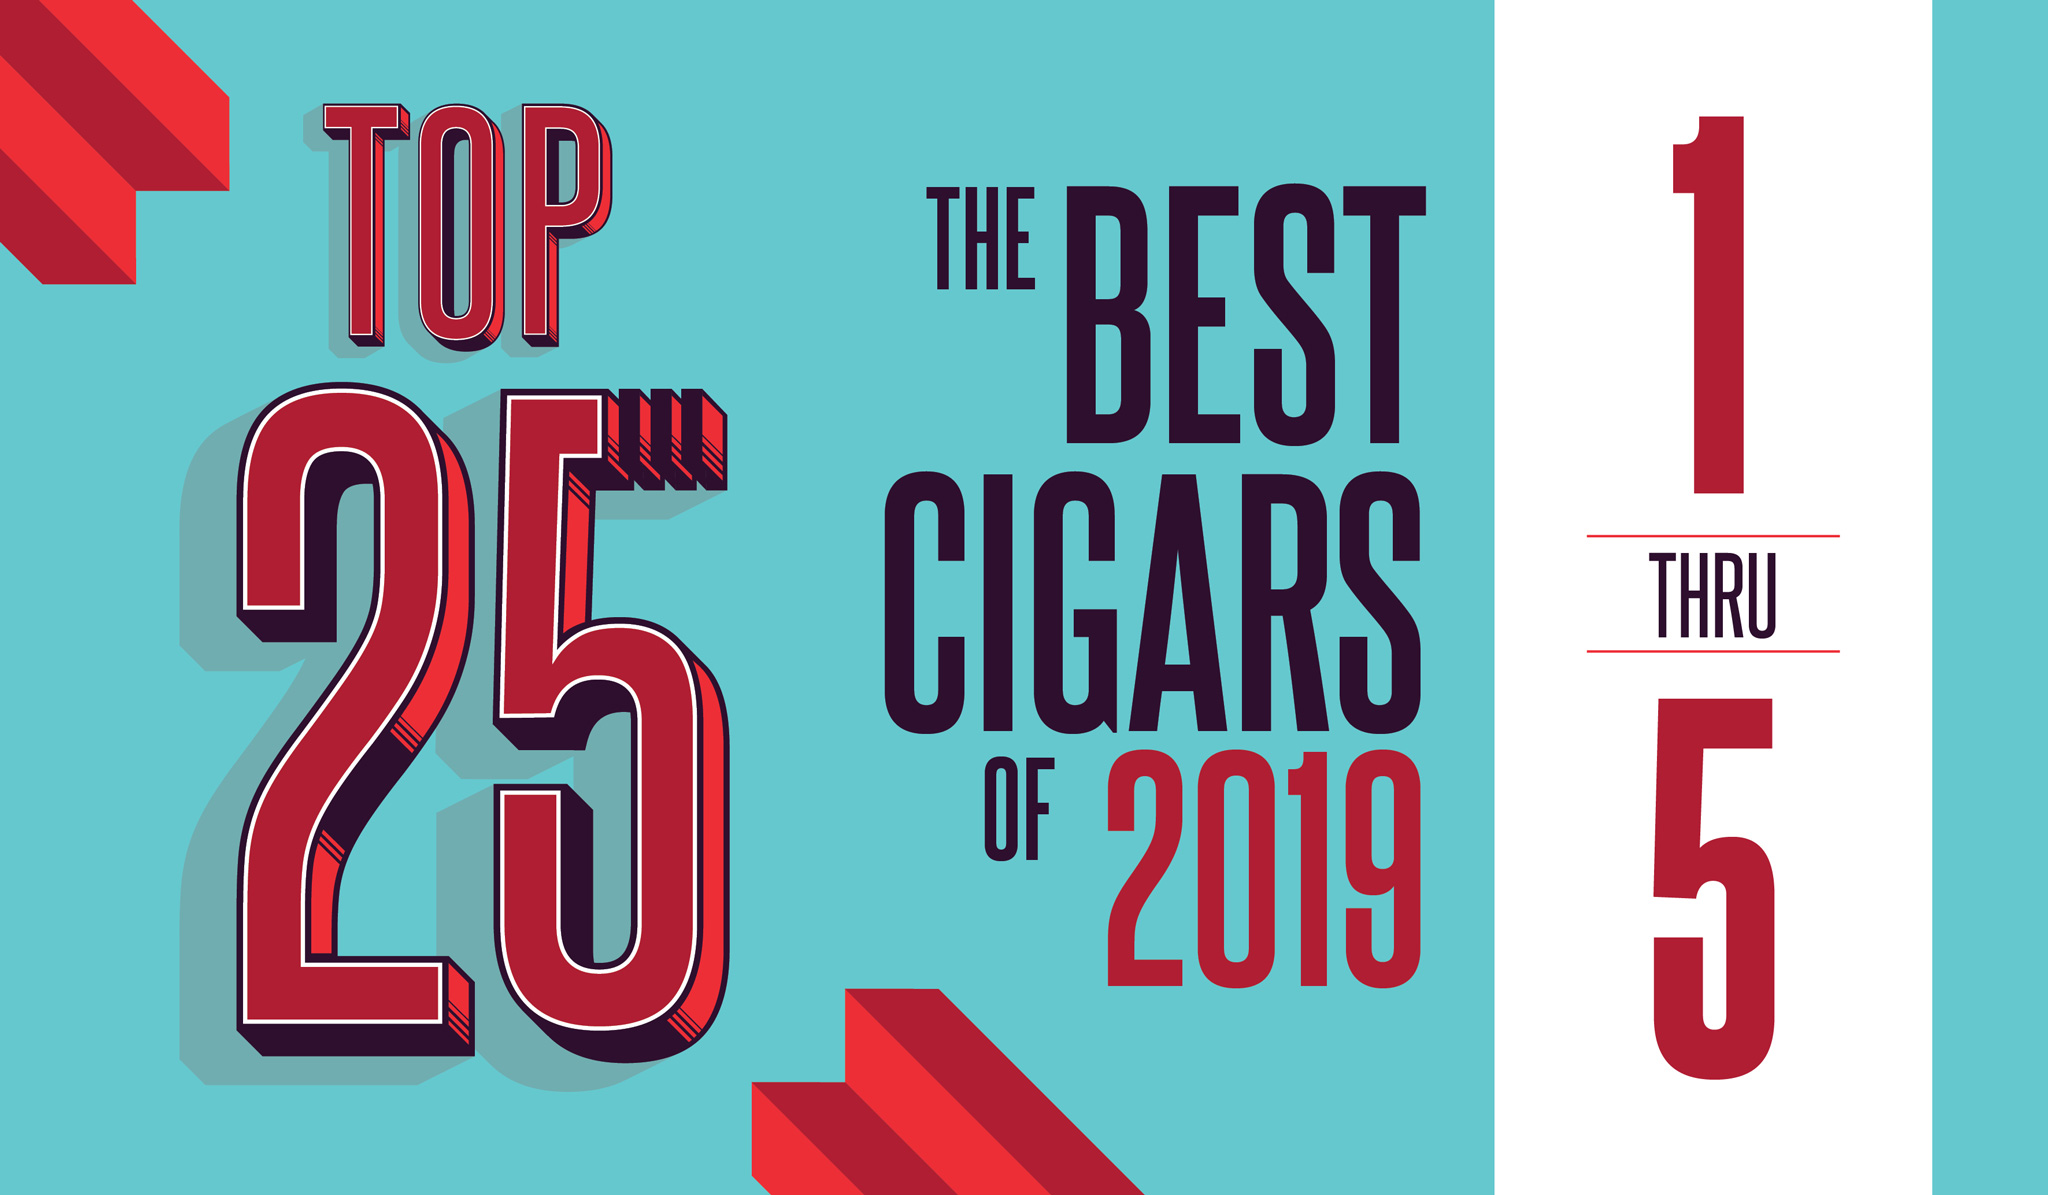 Top 25 Cigars of 2019 (1-5)